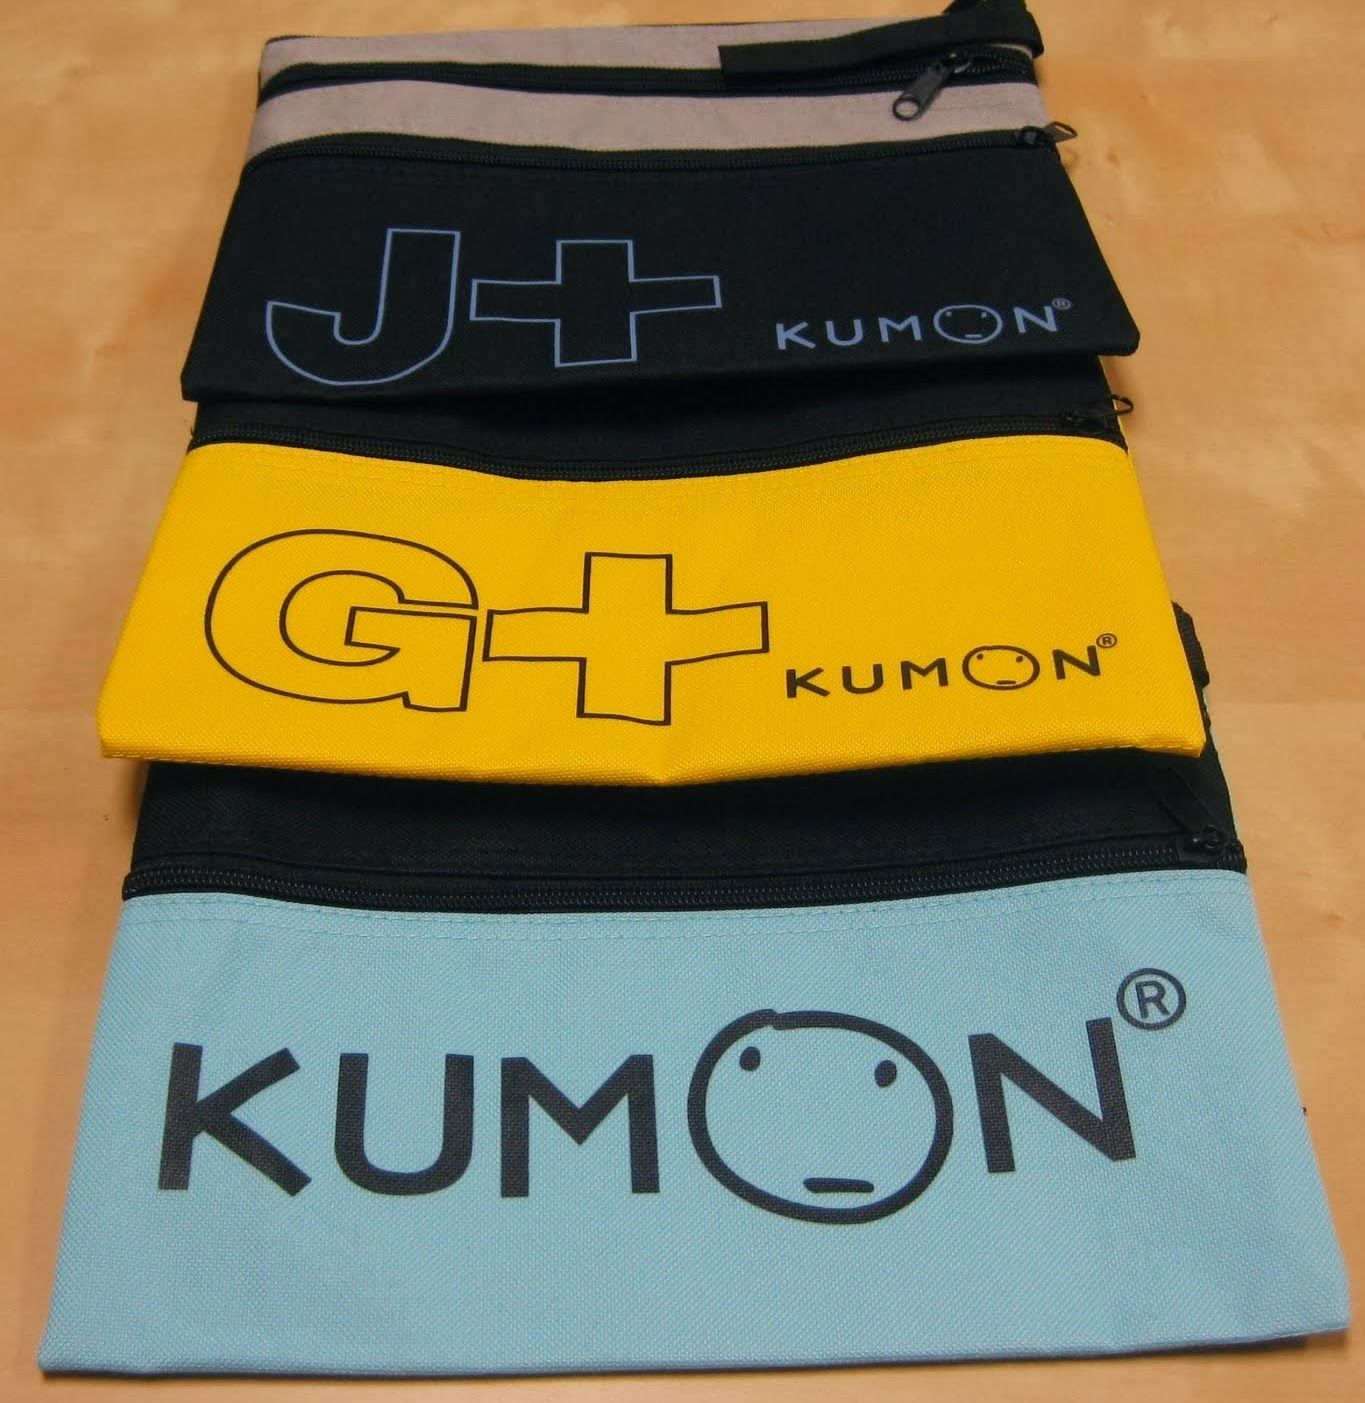 Worksheets Kumon Worksheets For Sale what are kumon bags lexington ky things i love ky